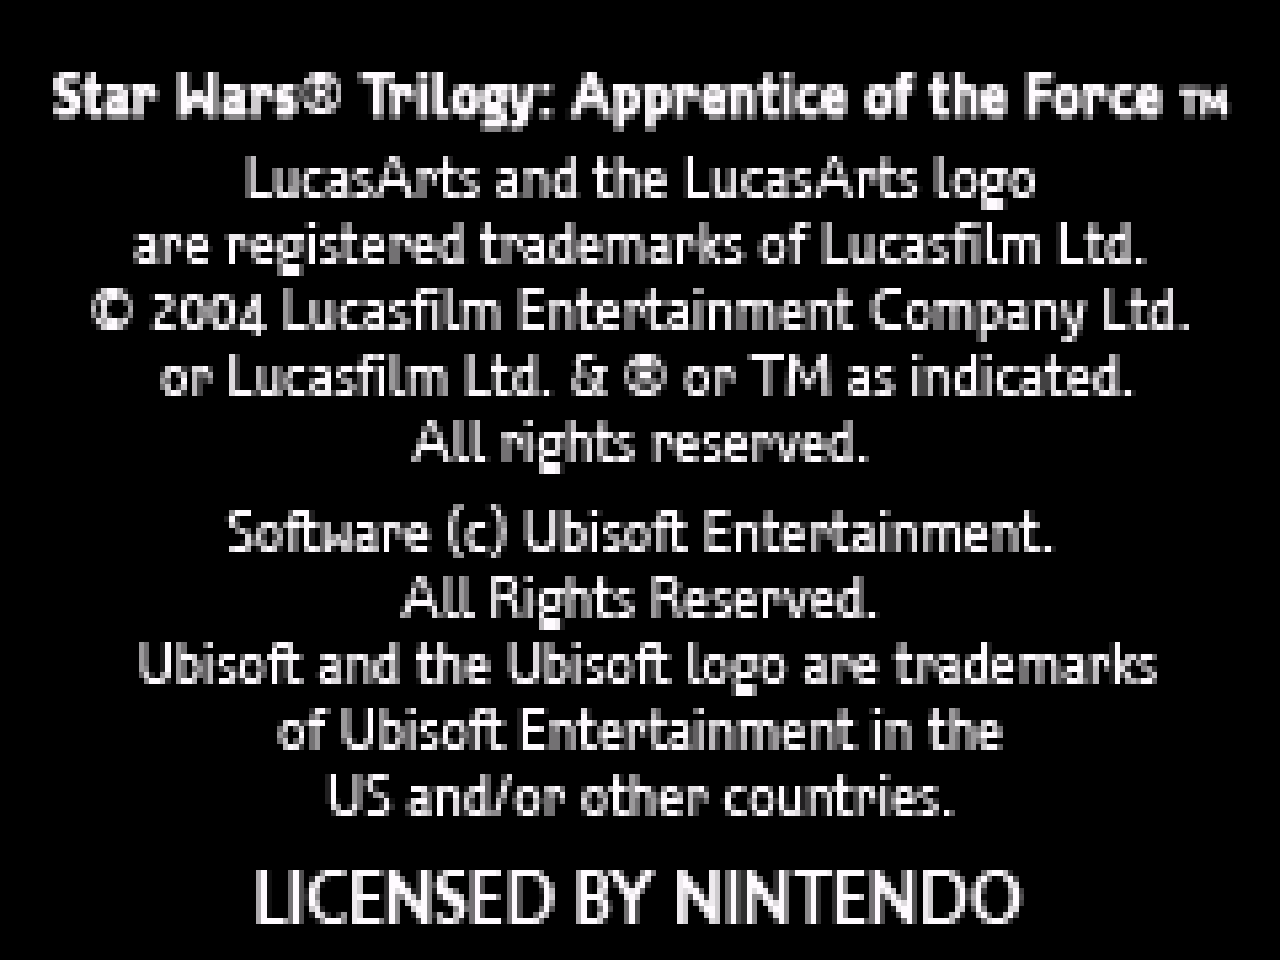 https://s3.eu-west-3.amazonaws.com/games.anthony-dessalles.com/Star Wars Trilogy Apprentice of the Force GBA 2020 - Screenshots/Star Wars Trilogy Apprentice of the Force-201114-185759.png